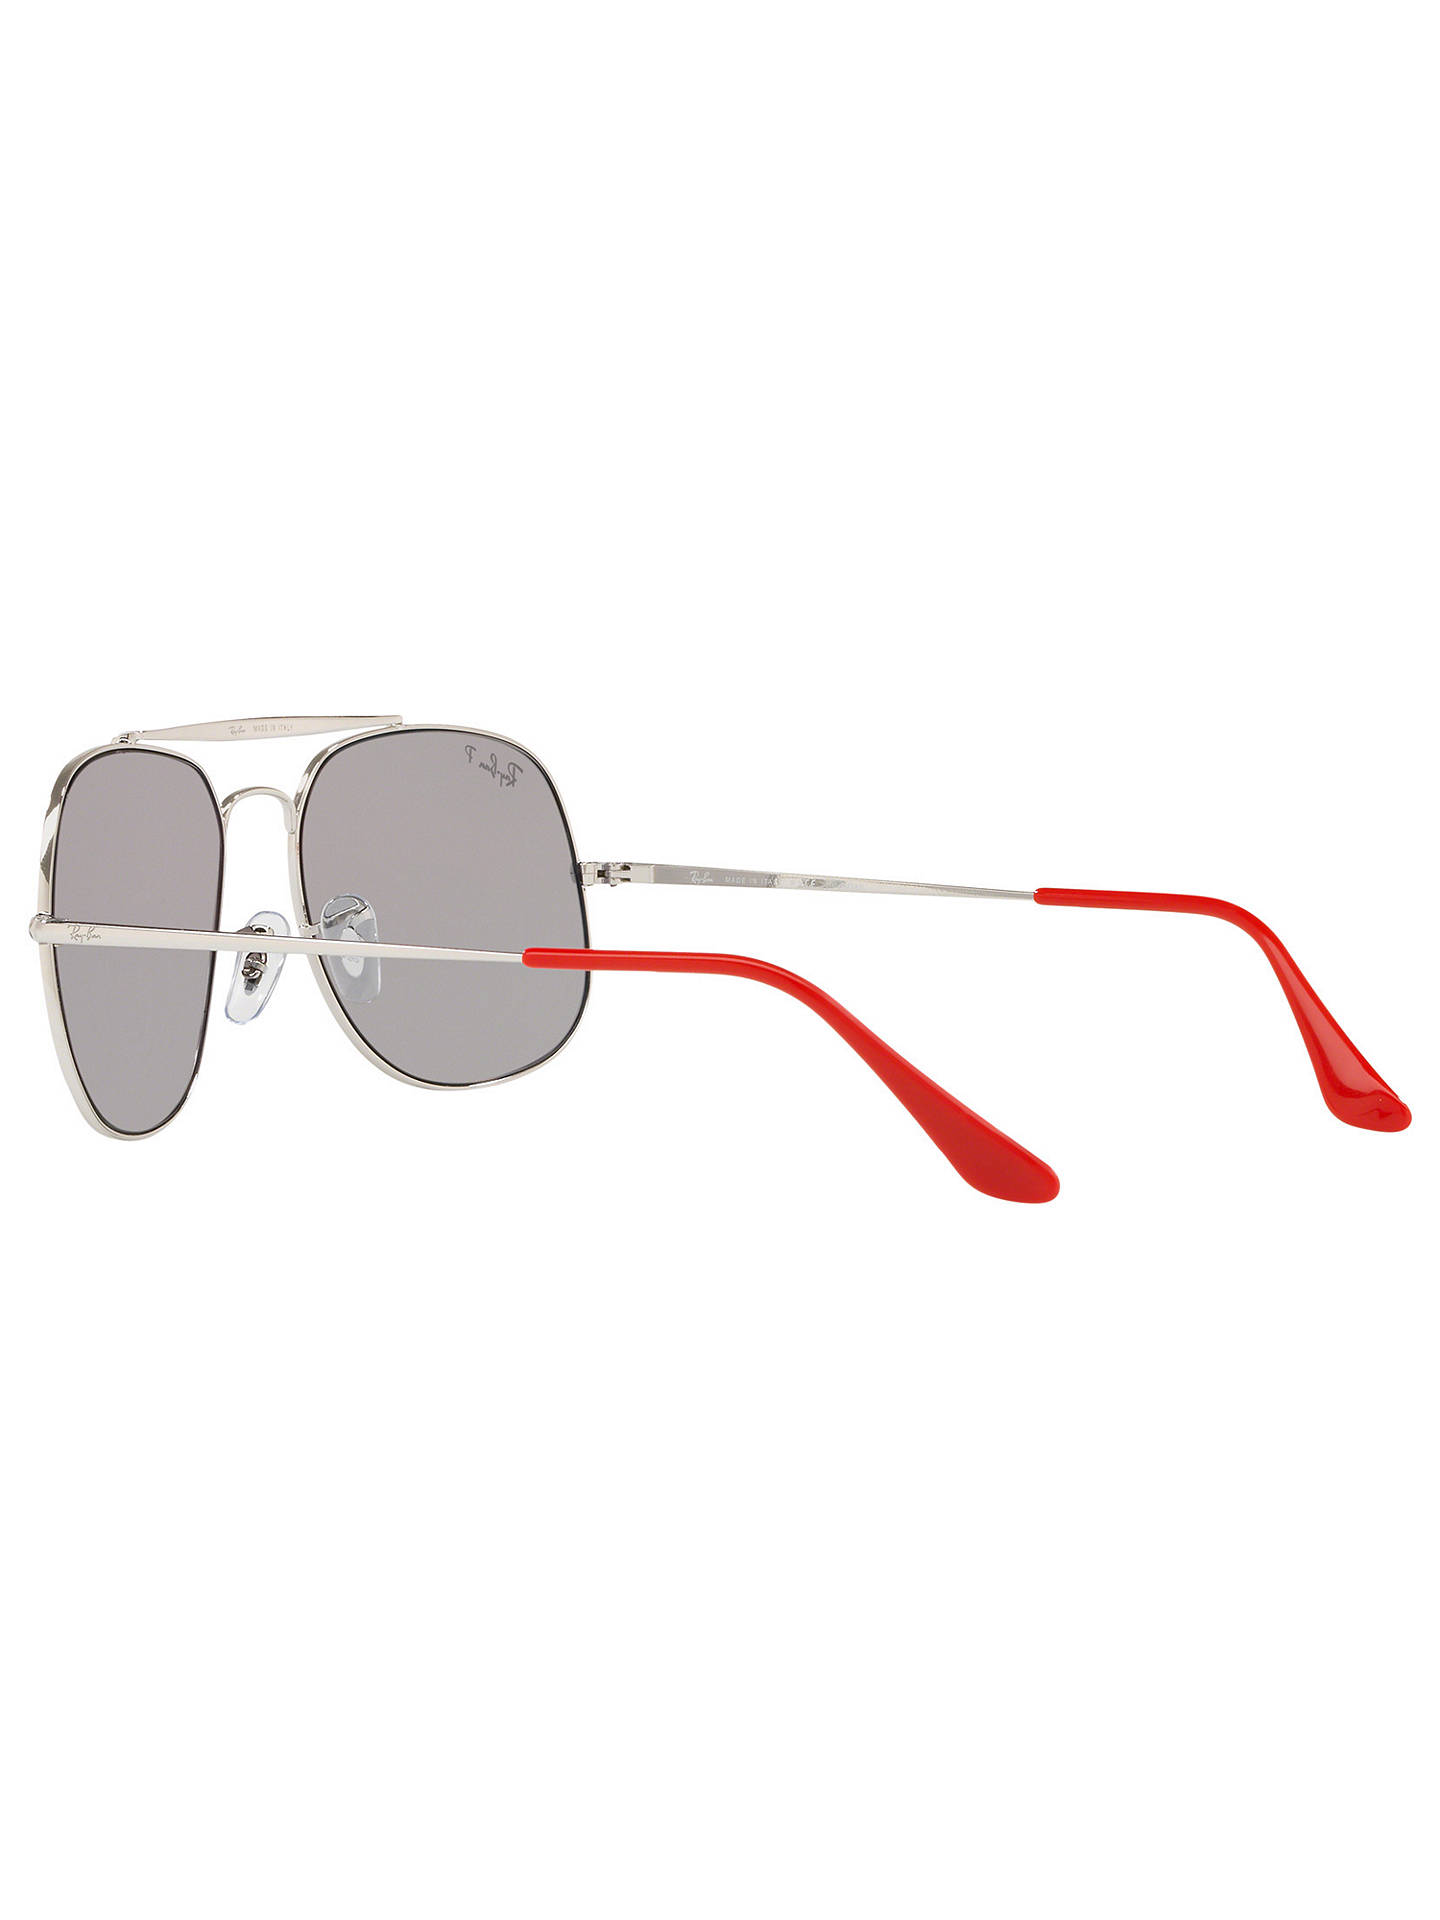 BuyRay-Ban RB3561 Men's The General Polarised Square Sunglasses, Silver/Grey Online at johnlewis.com